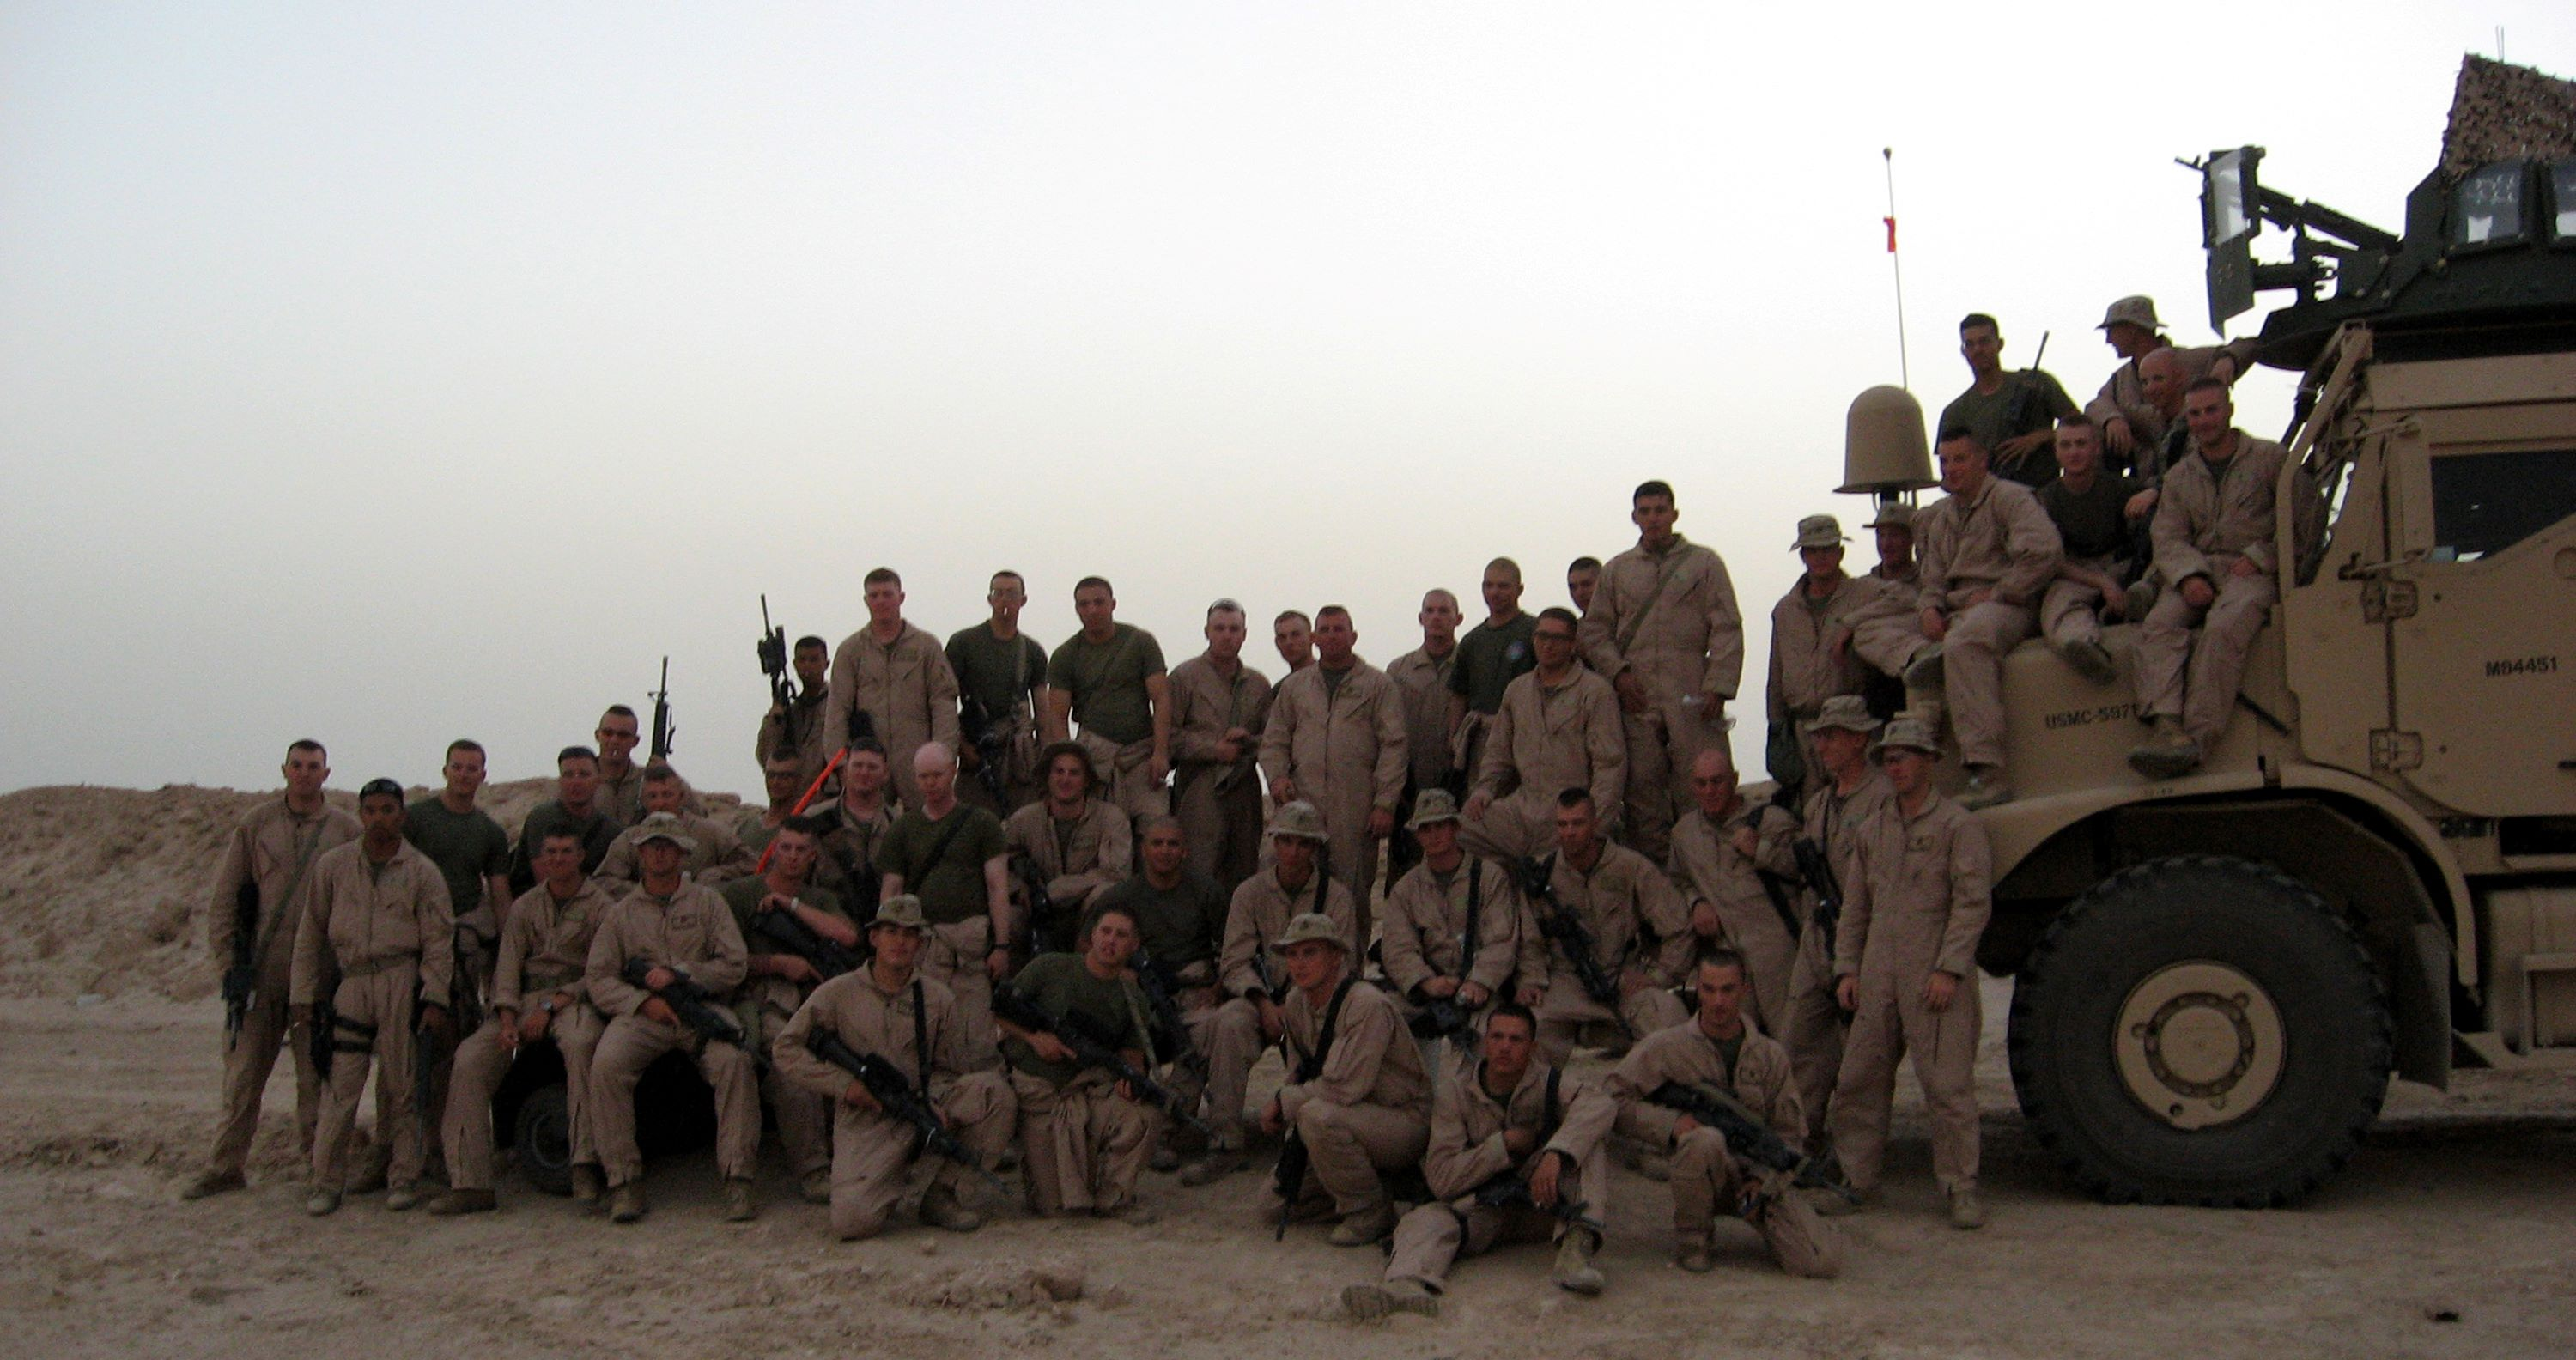 15 Years After the Iraq War's Deadliest Battle, Marines Fight to Save Their Comrades